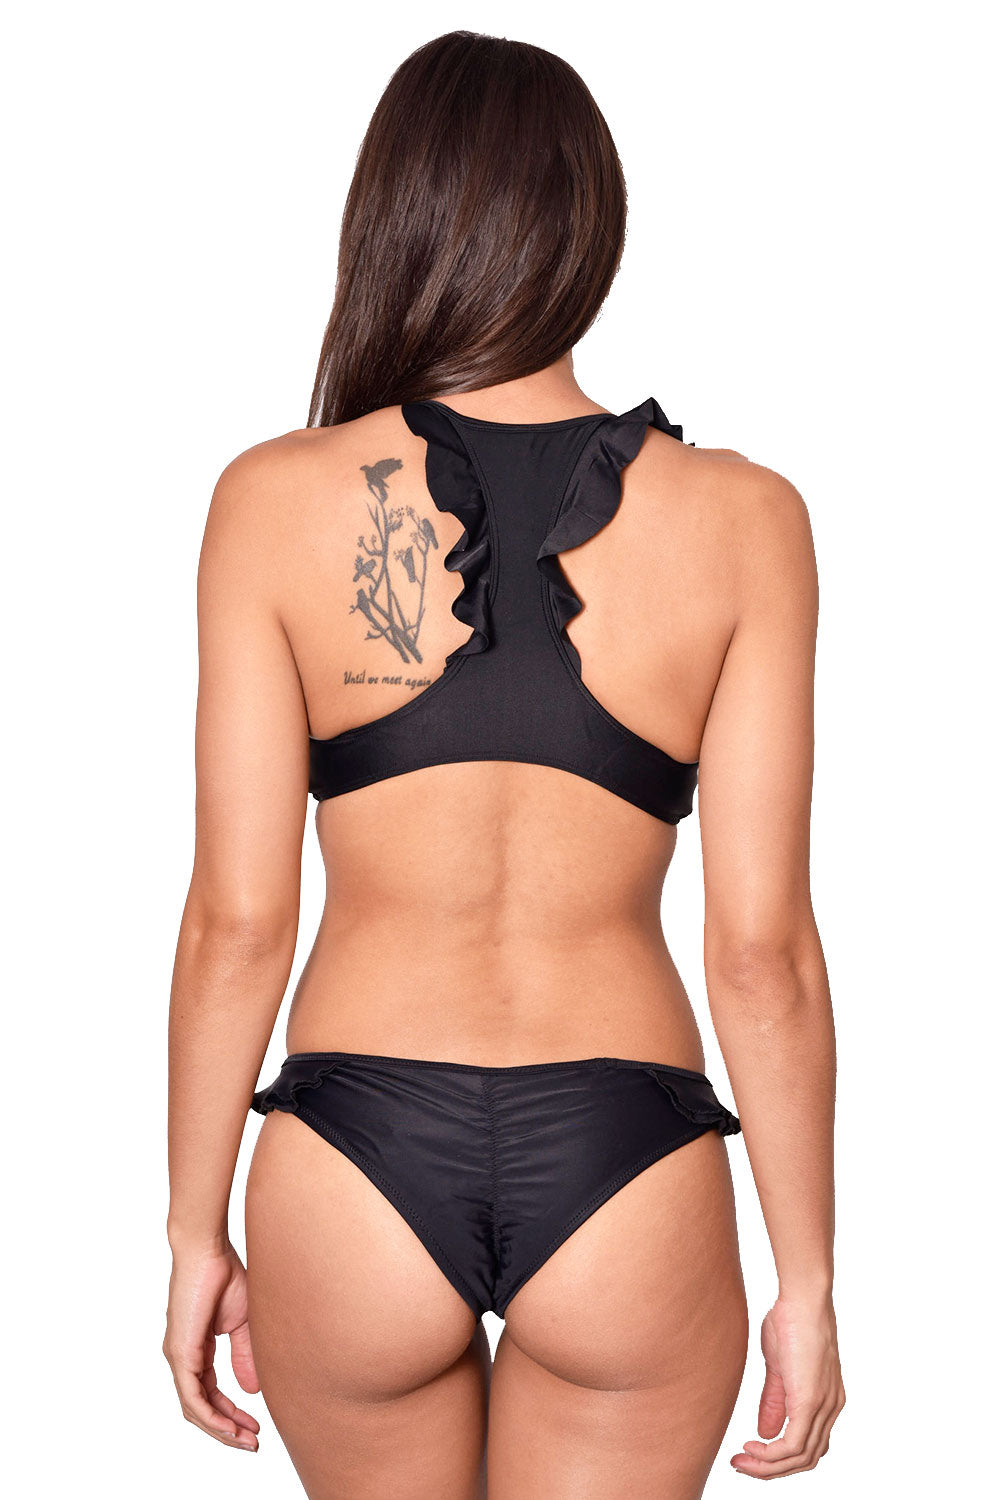 Ruffle Scrunch Black Bottom back